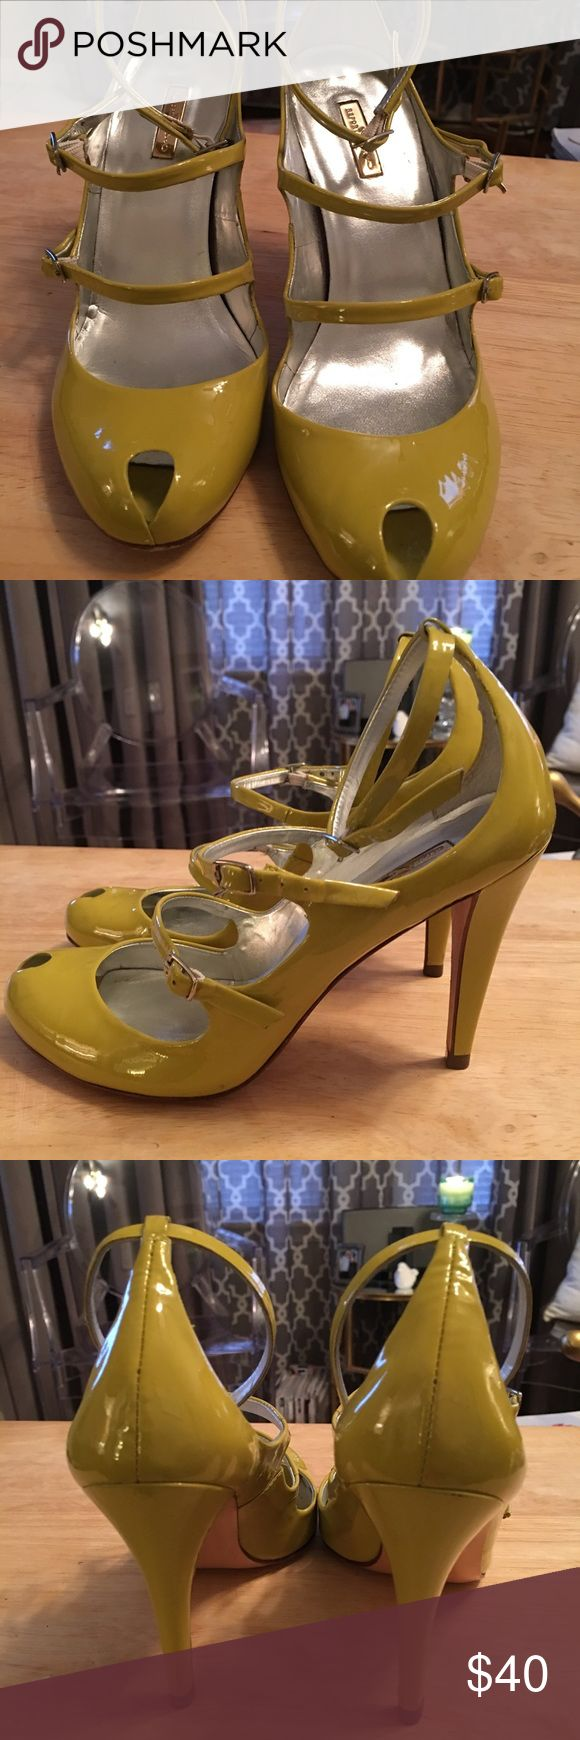 Report Signature strappy heels Lime green strappy peep toe heels. They are patent leather and have three straps with buckles. They are in a great used condition. Report Signature Shoes Heels